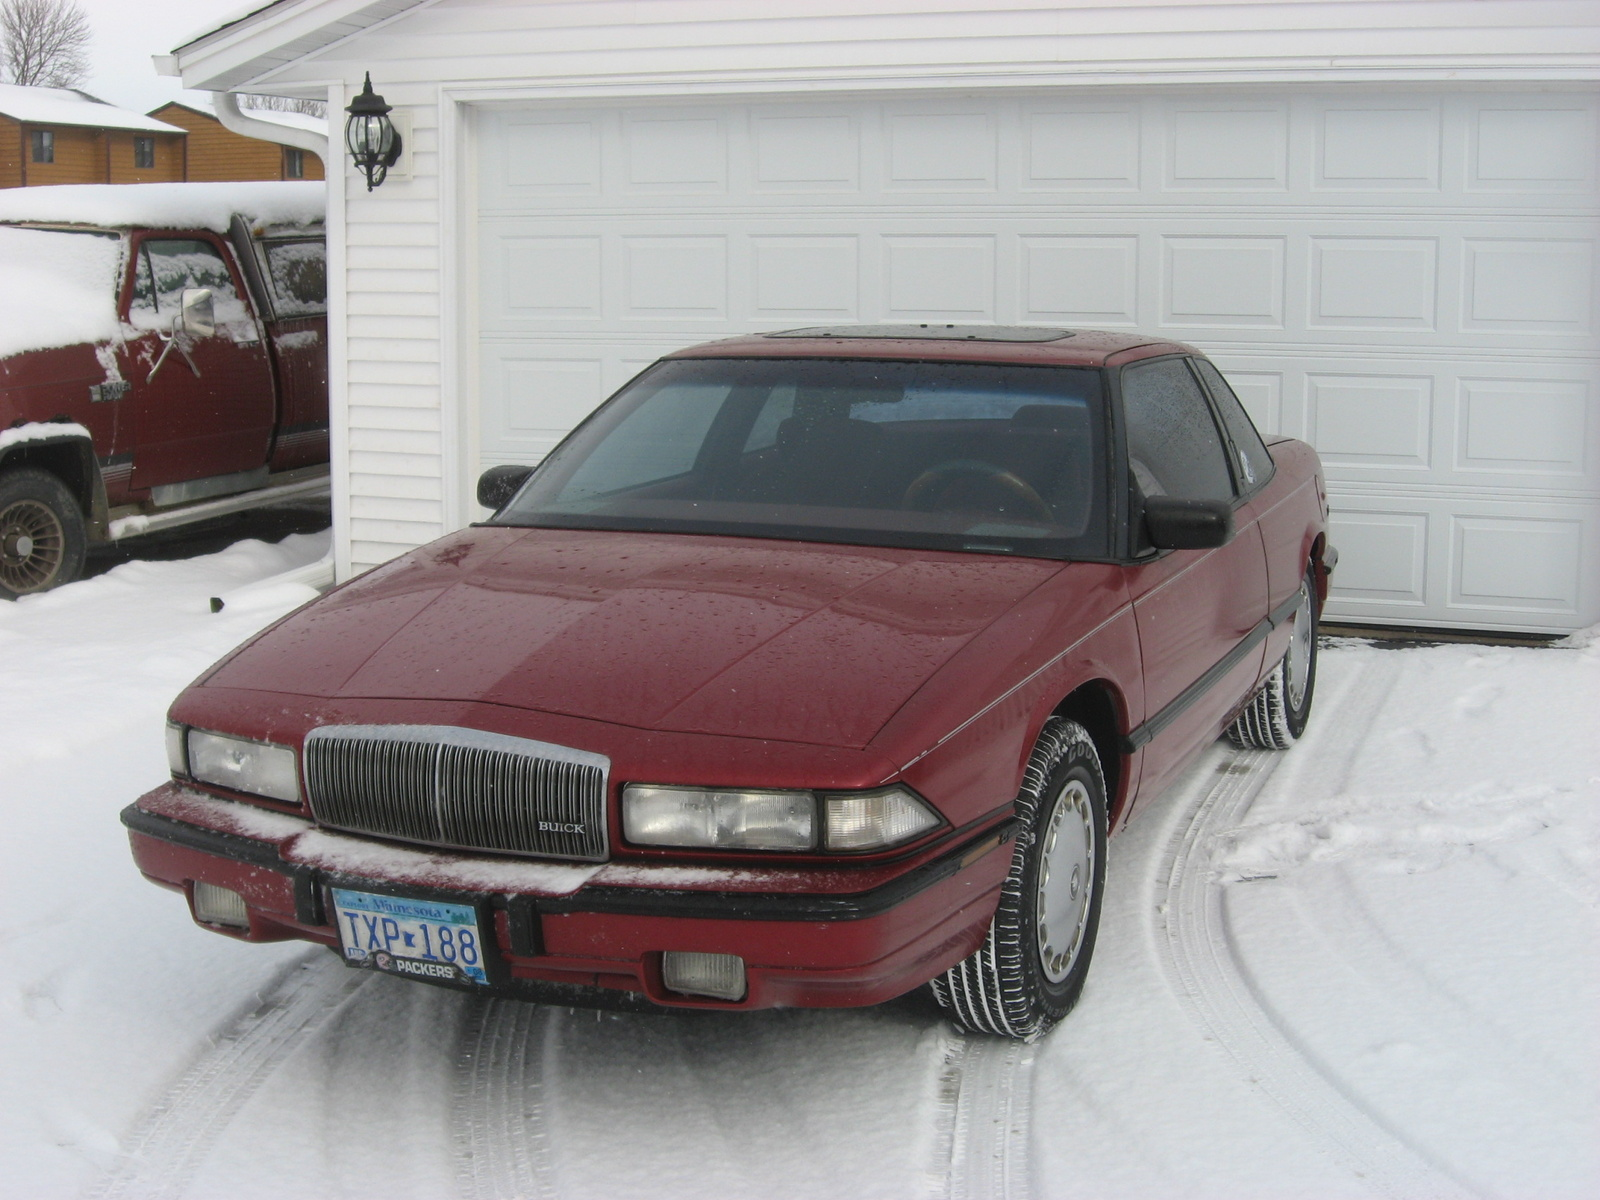 1994 Buick Regal 2 Dr Custom Coupe picture